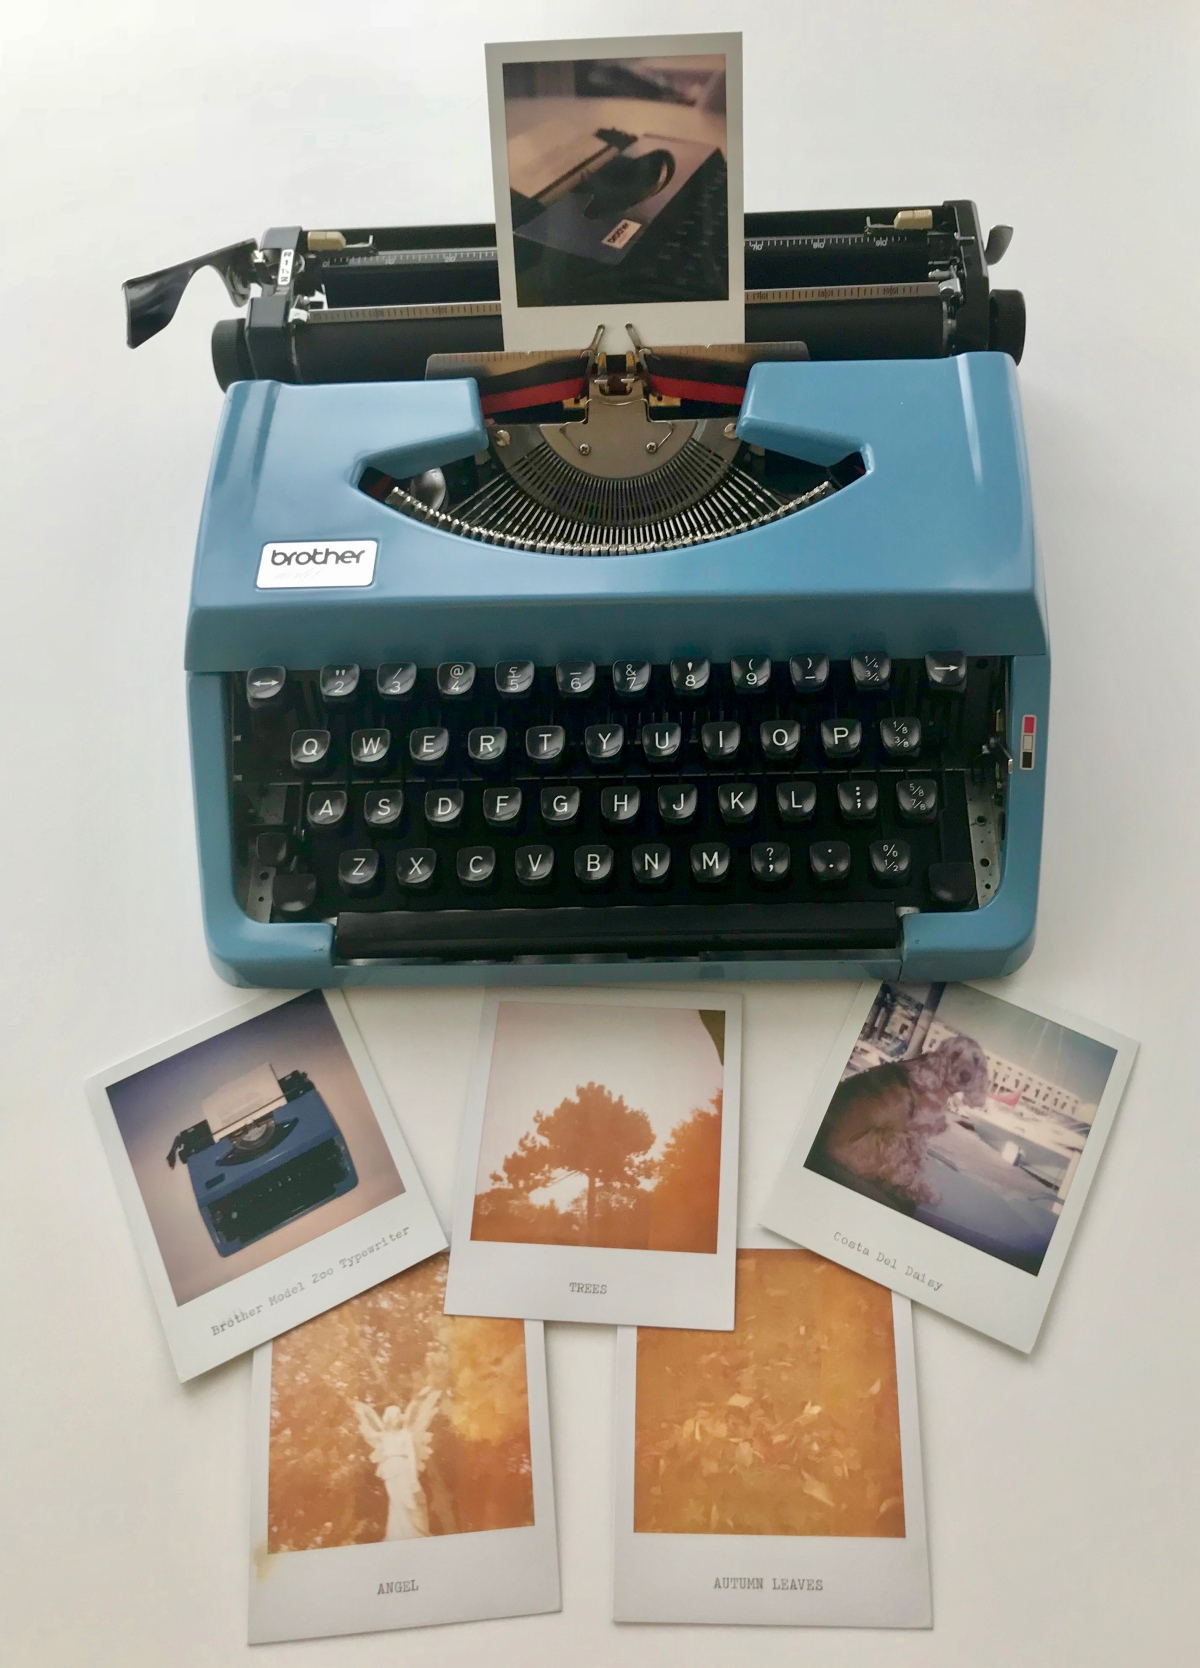 Typewriter and Polaroids